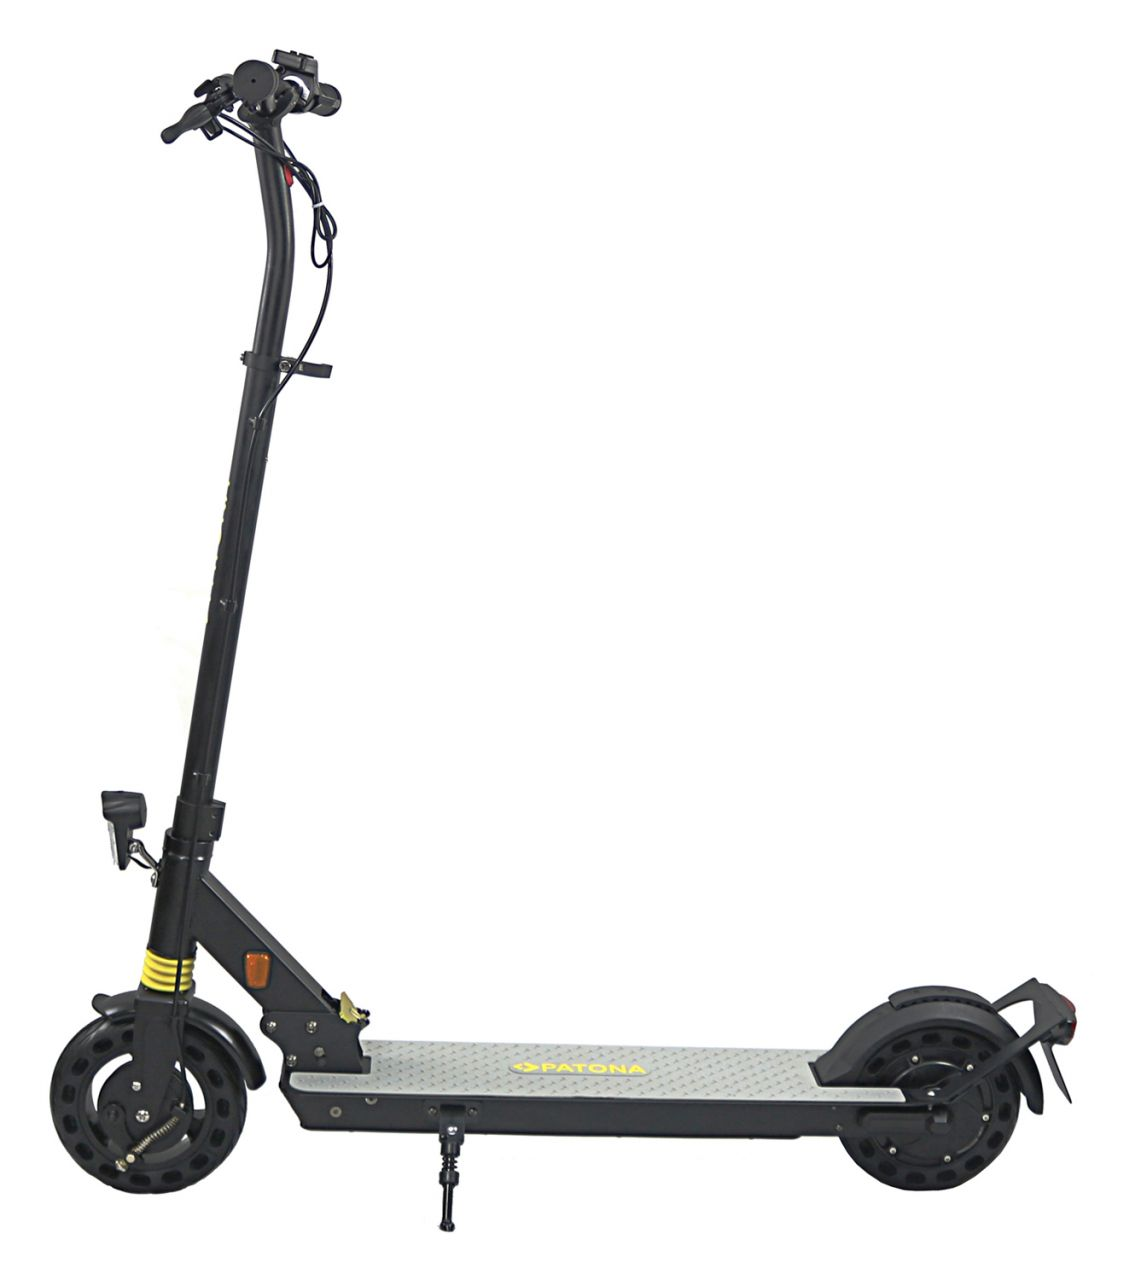 PATONA E-Scooter PT13-1 with road approval height adjustable